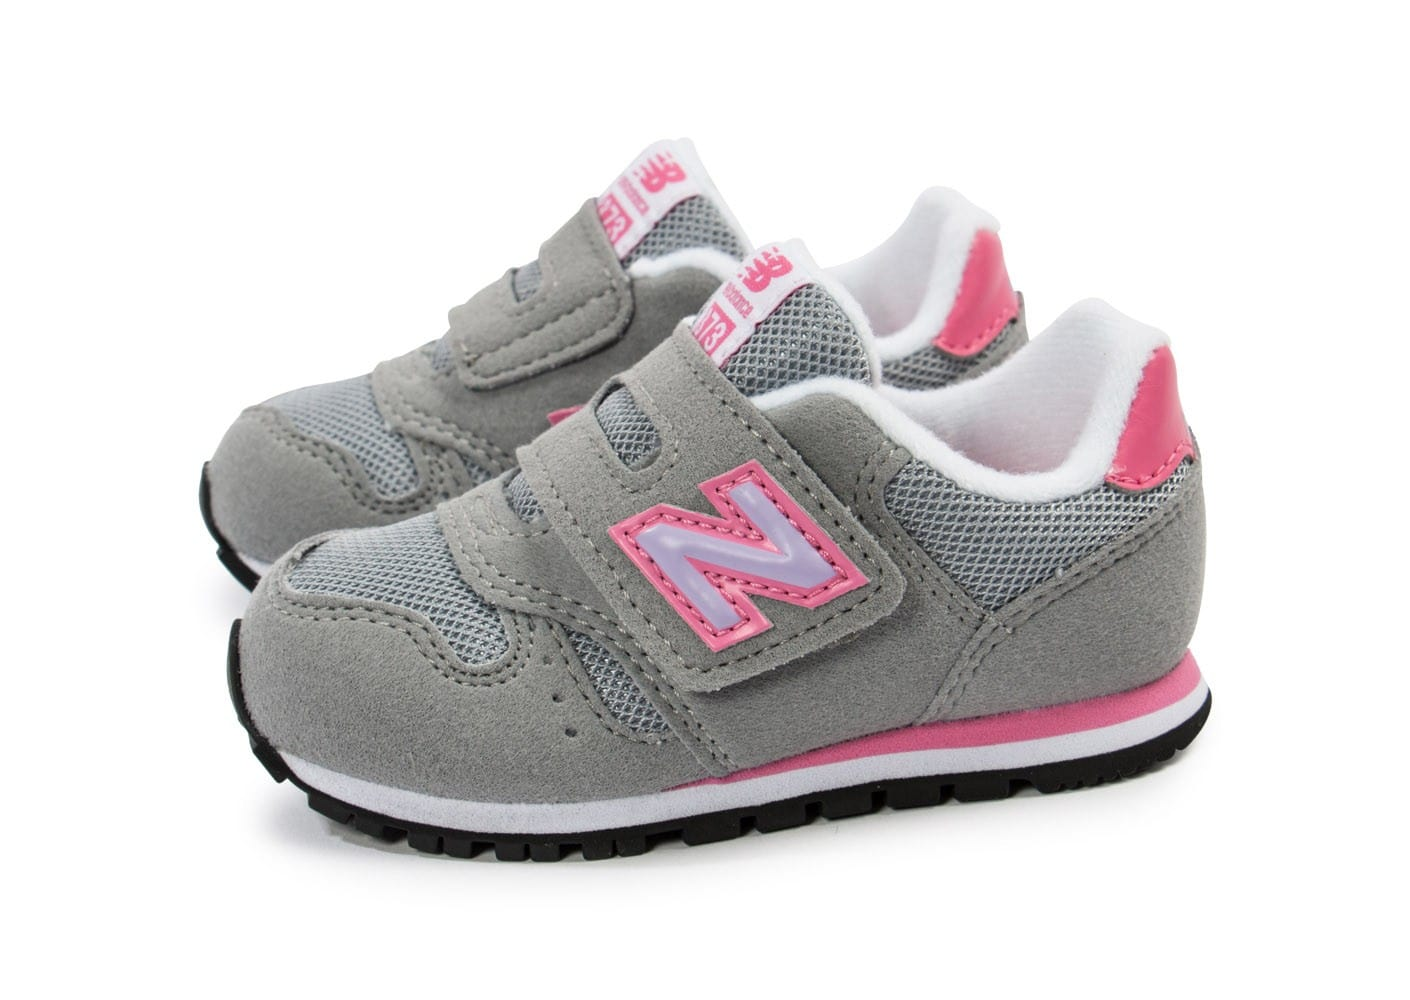 new balance kv373 fli b b grise chaussures enfant chausport. Black Bedroom Furniture Sets. Home Design Ideas